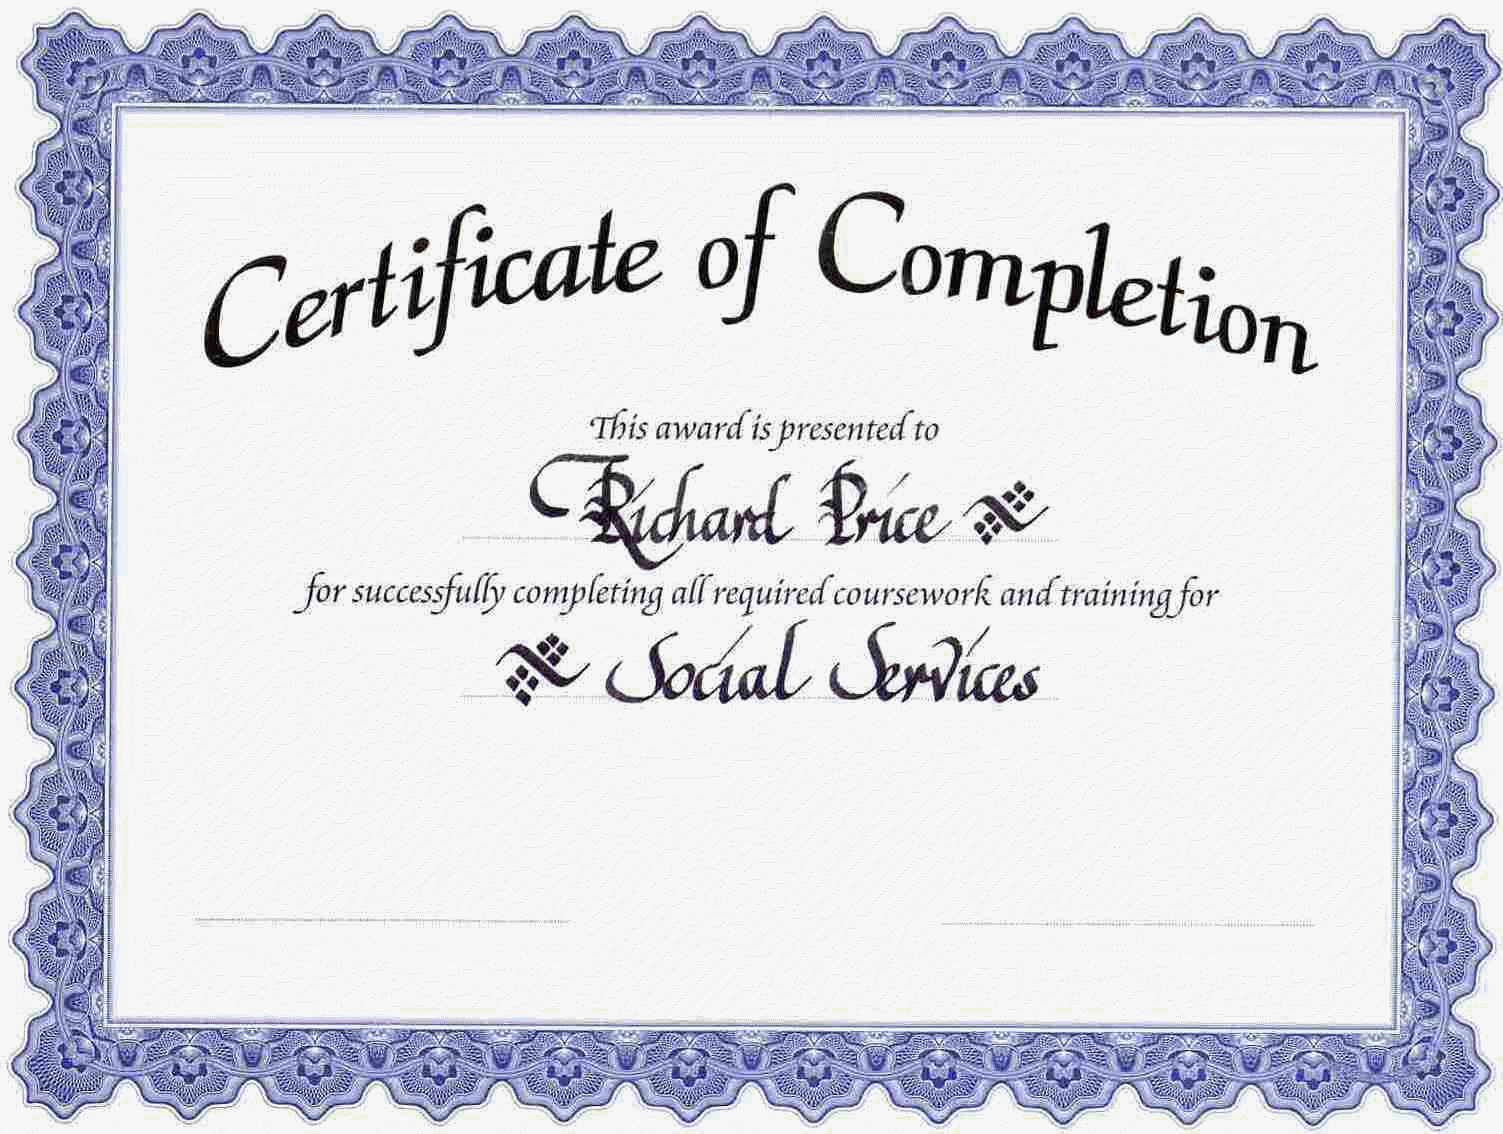 Certificate Completion Template Free Download Gallery Blank Certificate  Templates Free Download Images Templates 10 Certificate Of  Blank Certificates Templates Free Download